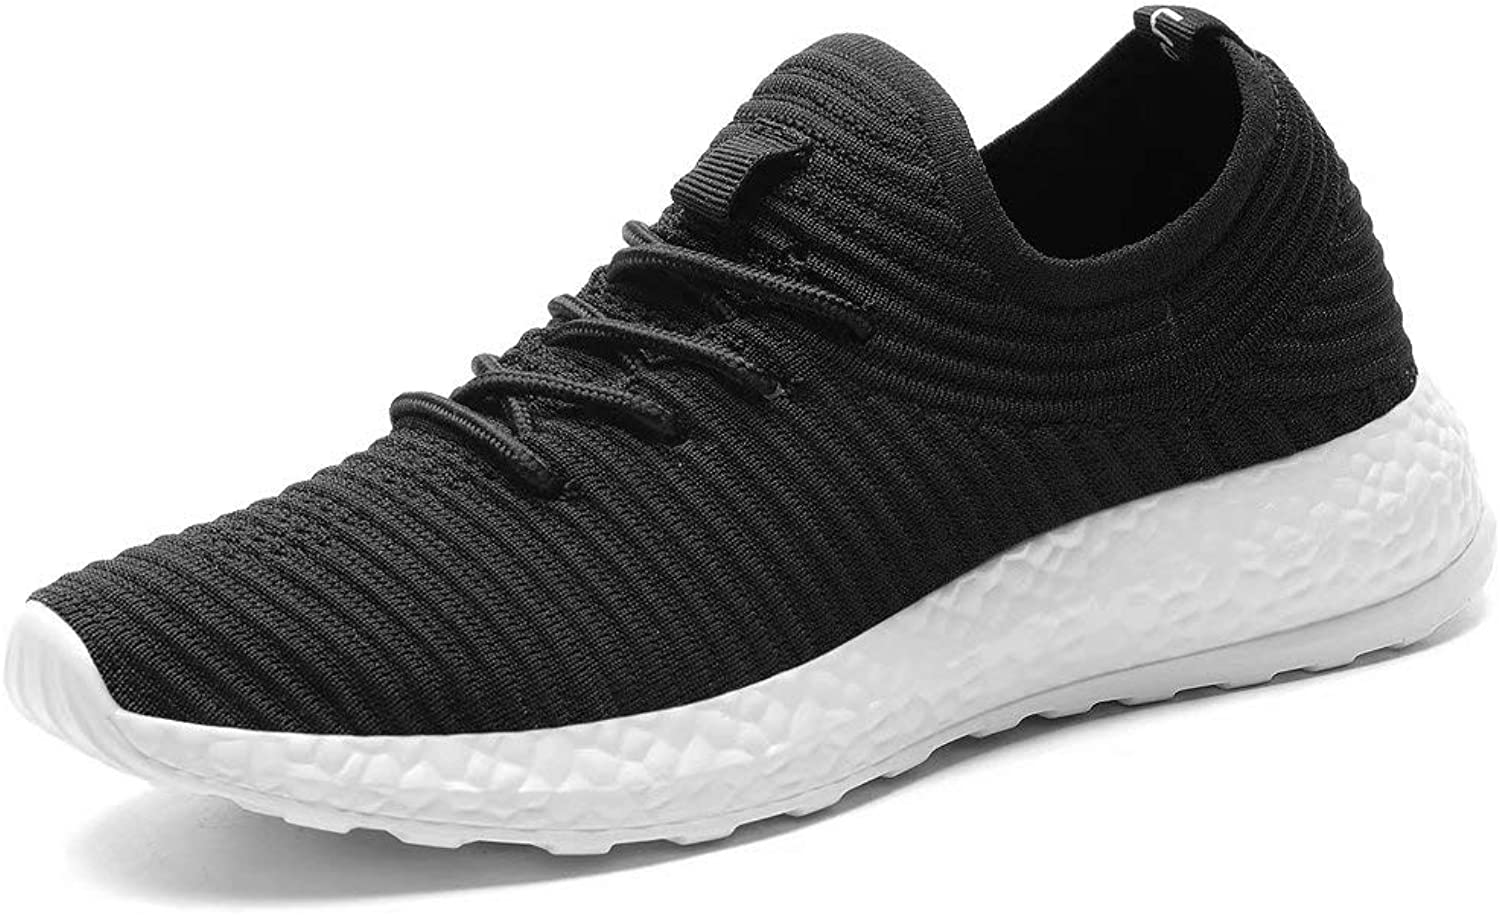 Konhill Women's Tennis Walking shoes - Lightweight Casual Athletic Sport Running Sneakers, Black, 37